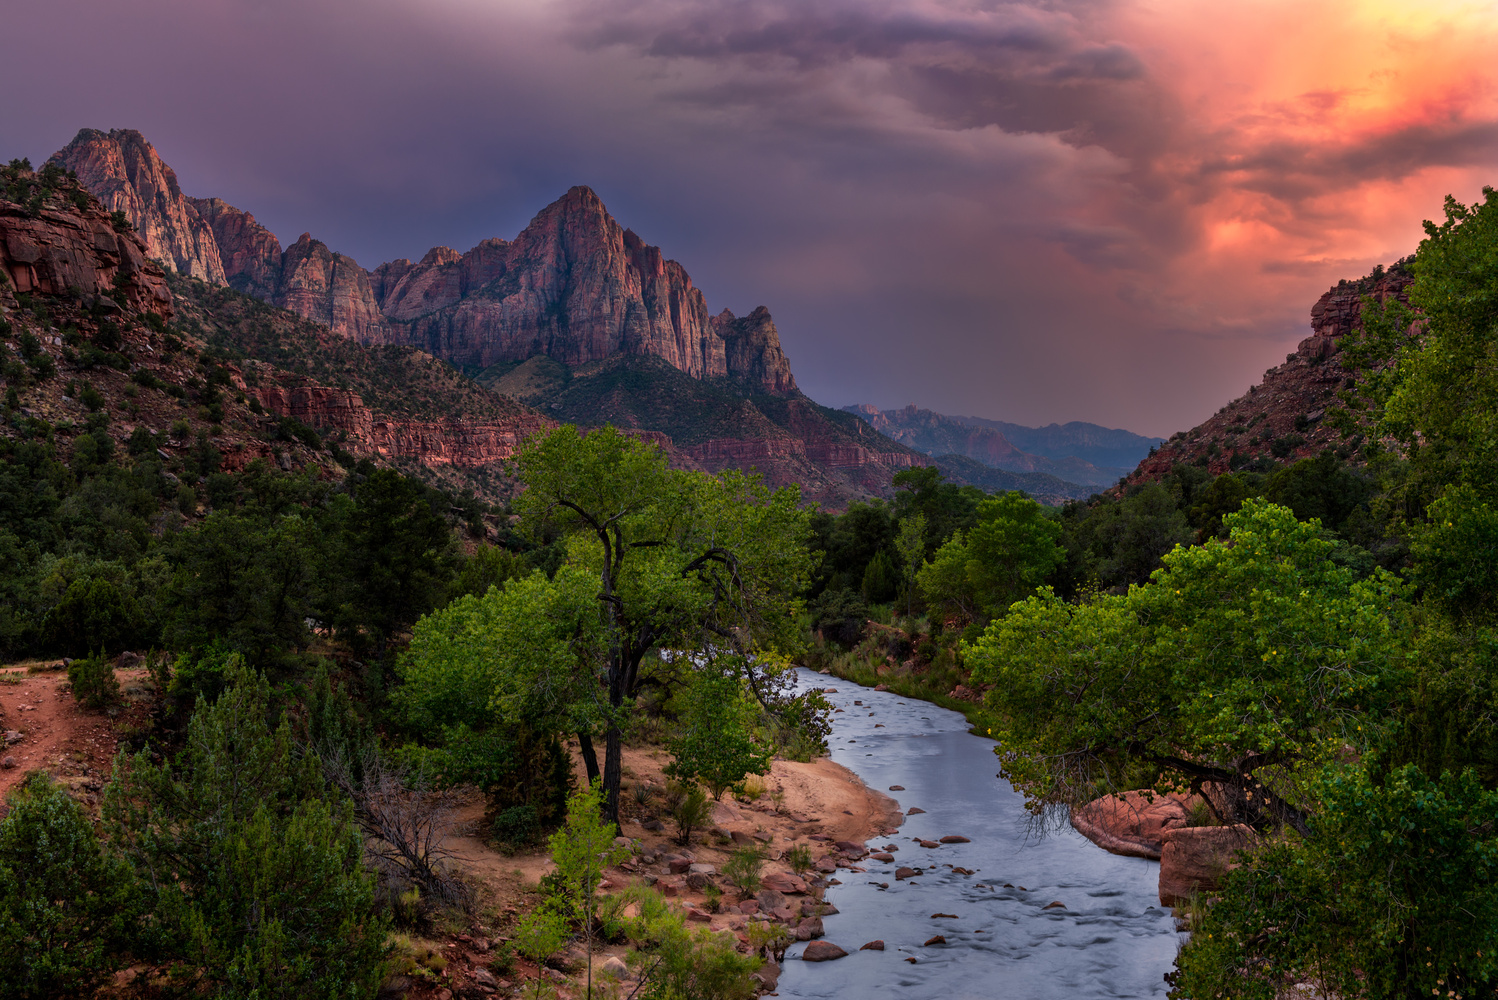 The Watchman by Chris Ward